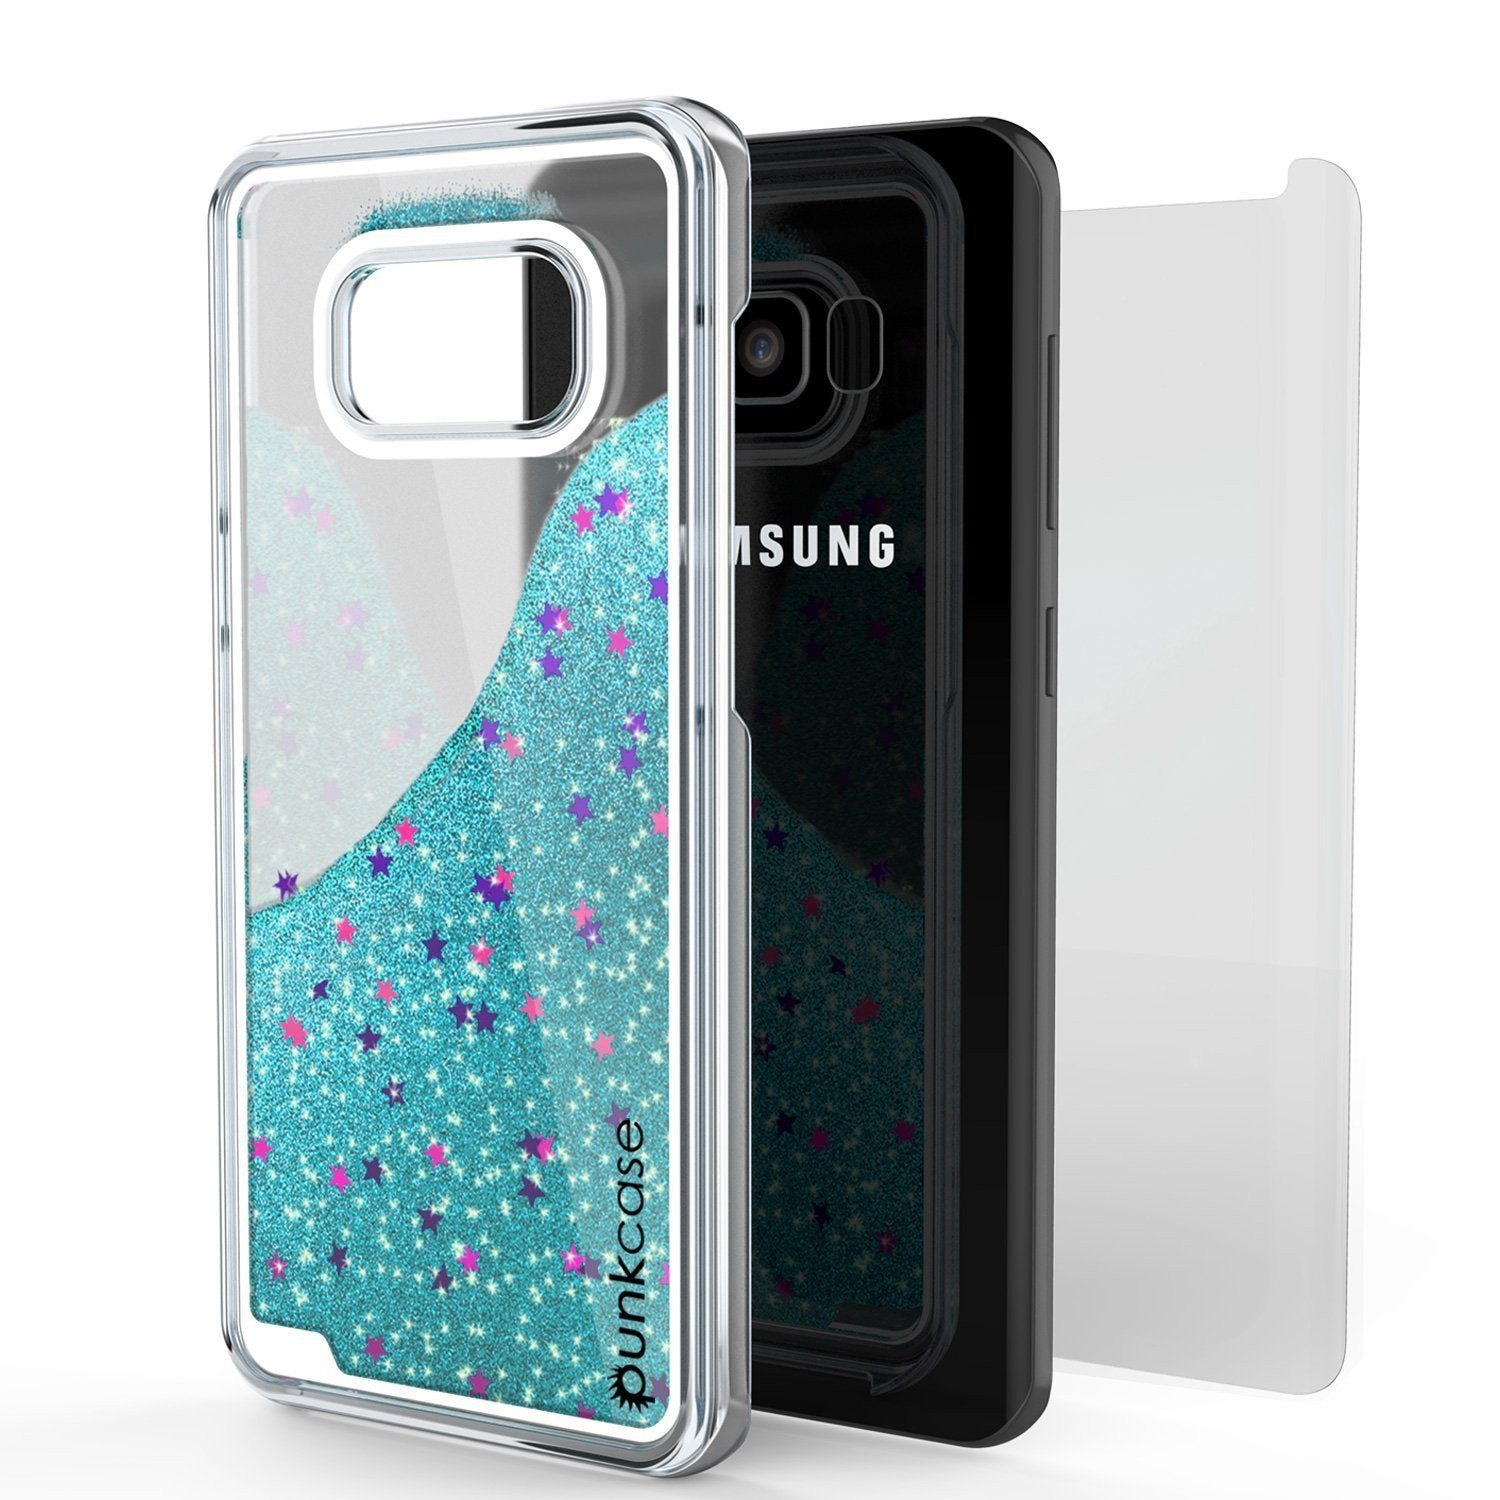 Galaxy S8 Case, Punkcase Liquid Teal Series Protective Dual Layer Floating Glitter Cover